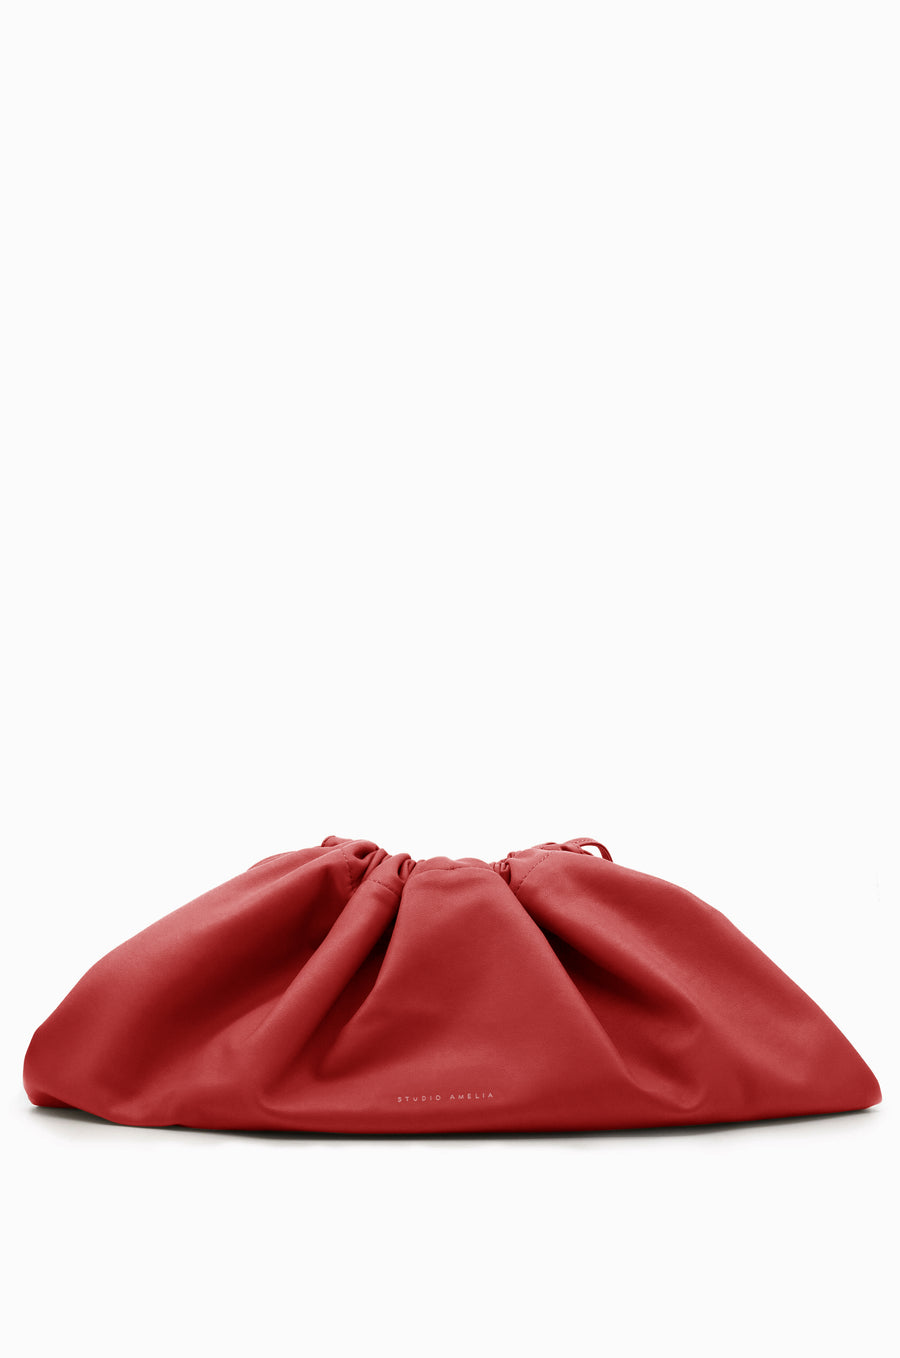 Maxi Drawstring Bag | Scarlet